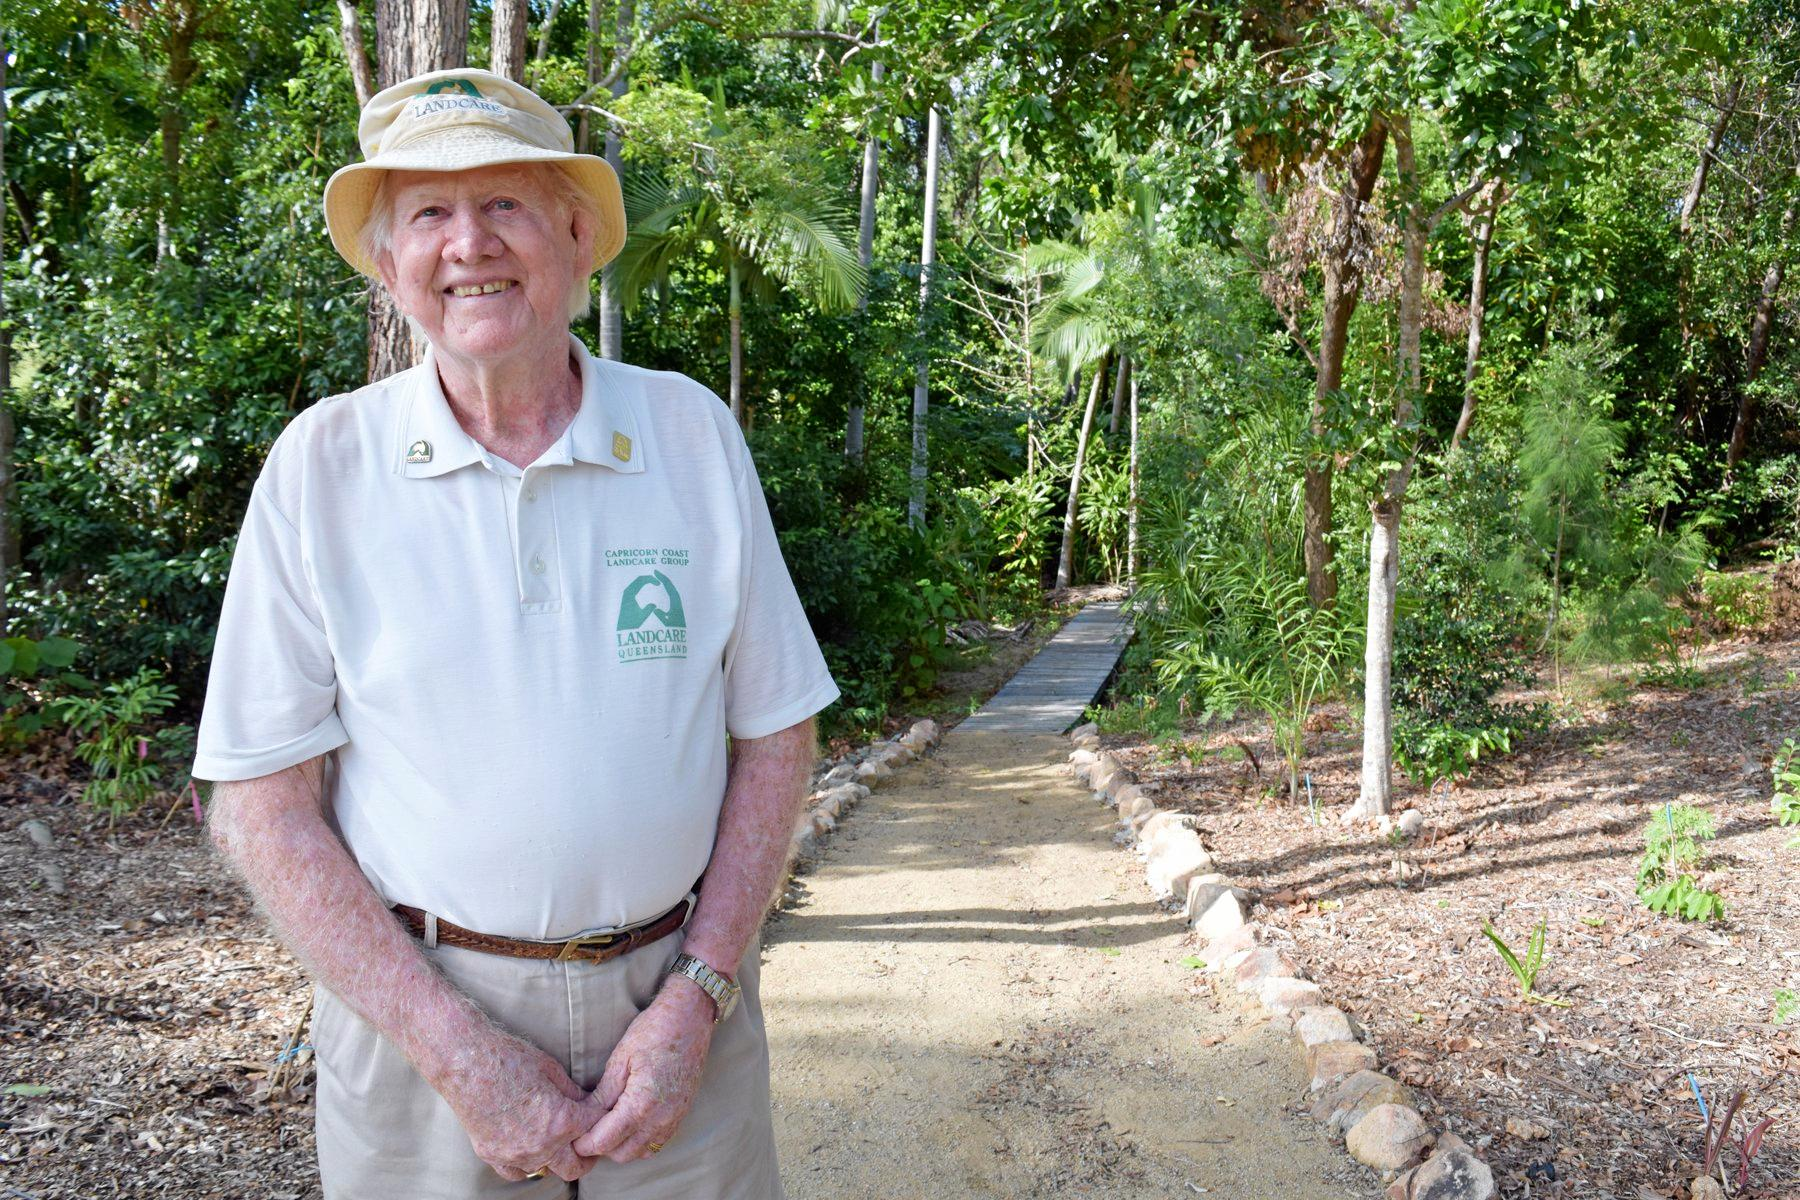 Capricorn Coast Land Care environmental warrior Alby Wooler passed away this year and a lush parkland is set to be named in his honour.